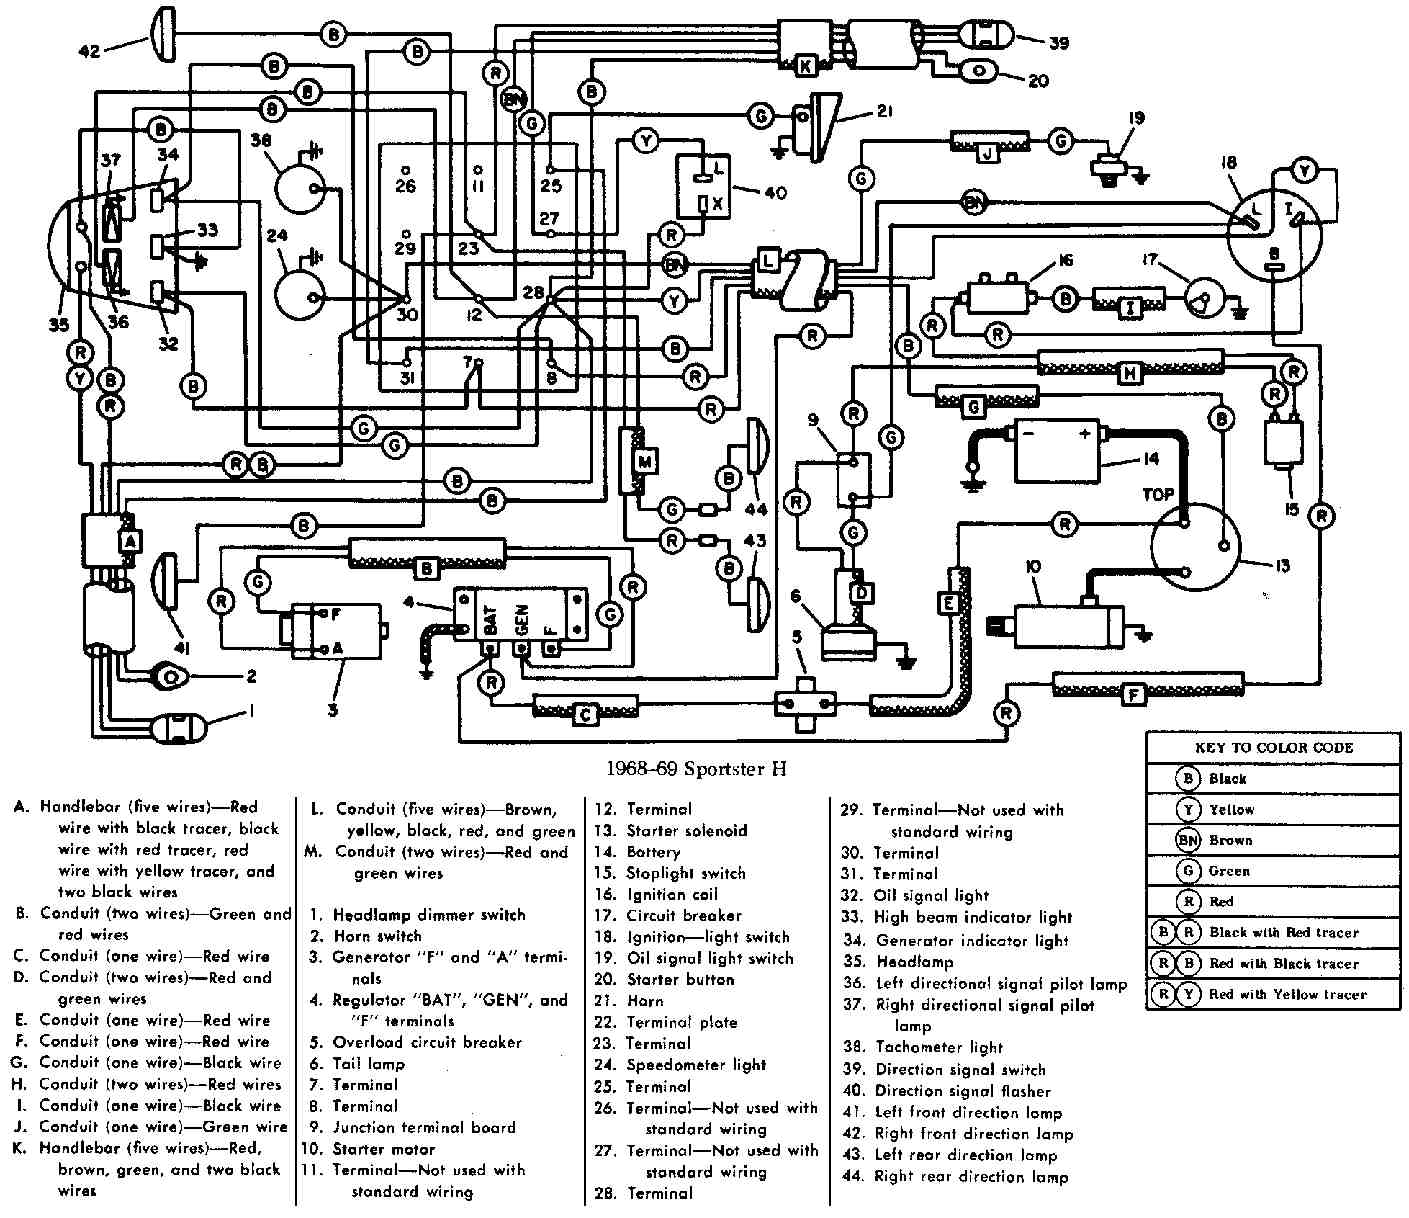 1999 Harley Davidson Electra Glide Wiring Diagram Schematics Motorcycle Kill Switch Flstc Road King A Shovelhead Starter Wide